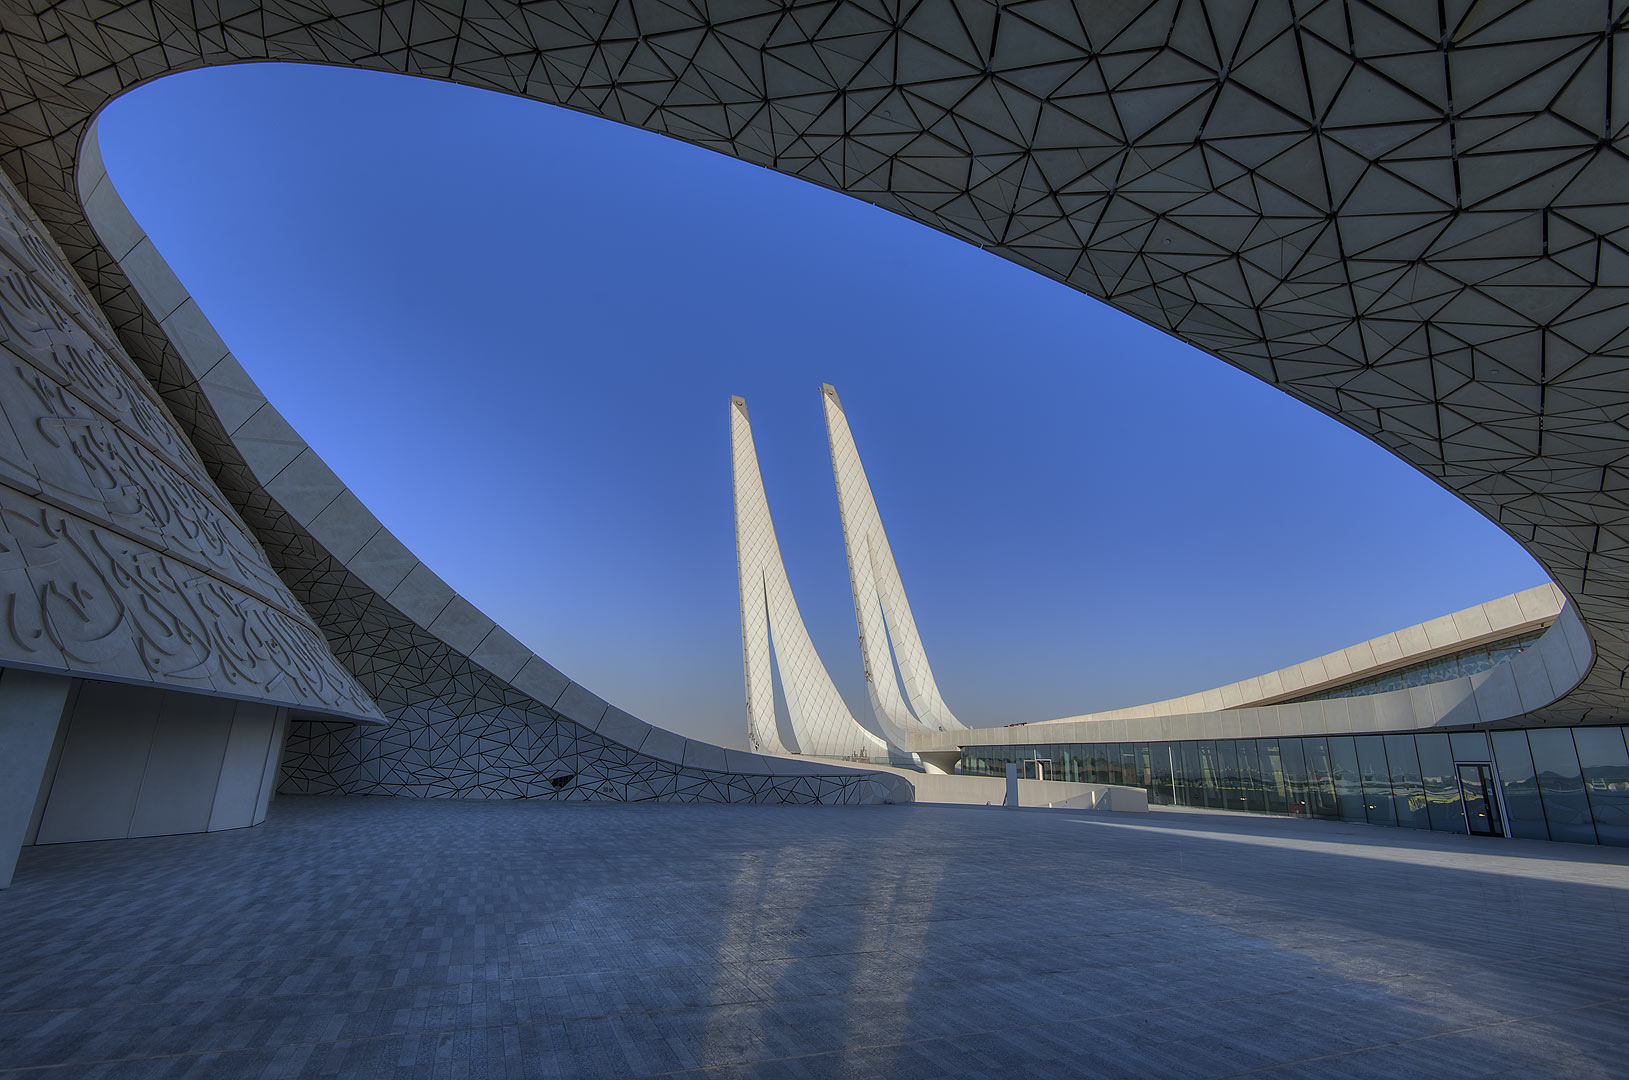 Oval courtyard and concrete pillars in Education City Mosque. Doha, Qatar